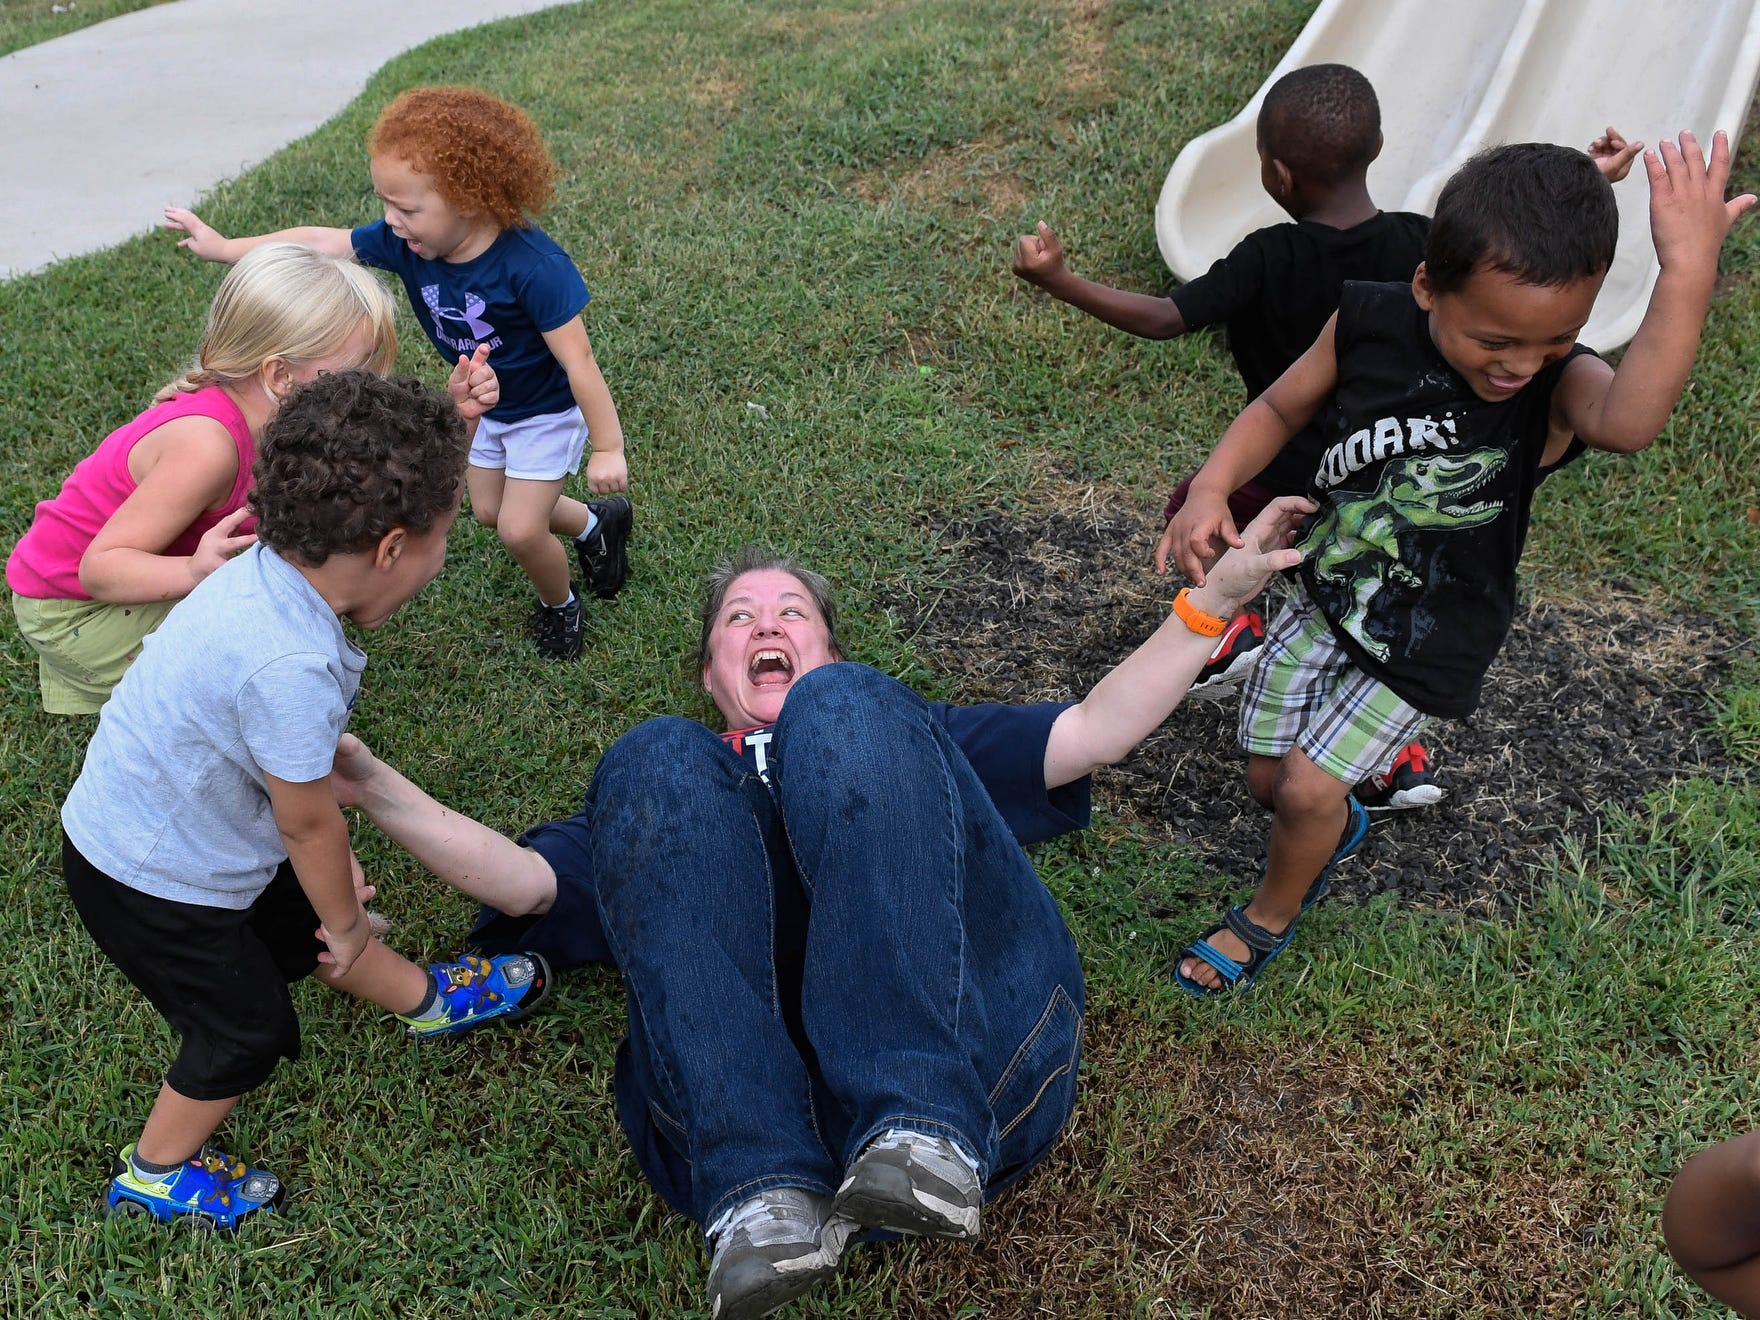 Vectren volunteer Fauna Kell gets down in the grass to play zombies with kids at the Ark Crisis Child Care for the United Way Day of Caring, where hundreds of volunteers spend the day working at local nonprofit agencies to kick off the annual United Way fall campaign Friday, September 7, 2018.